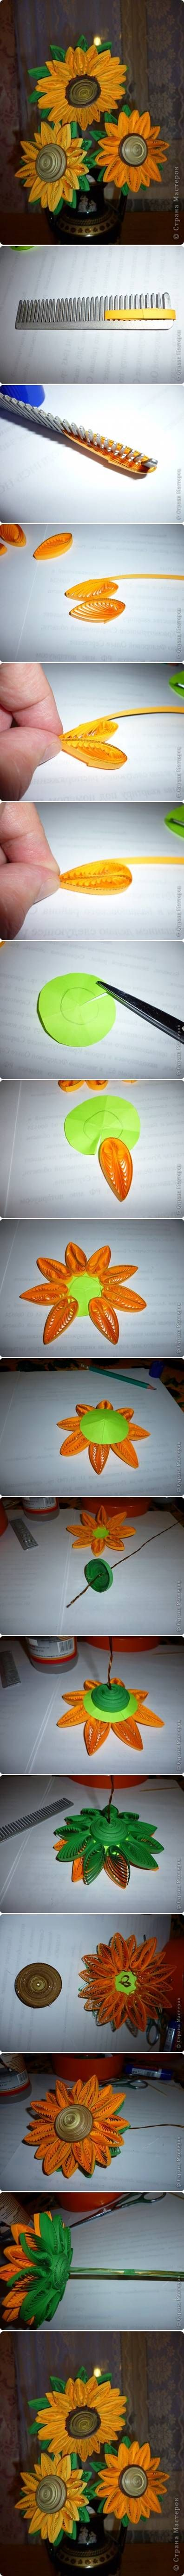 DIY Quilled Sunflowers | iCreativeIdeas.com Like Us on Facebook ==> https://www.facebook.com/icreativeideas girassol de papel